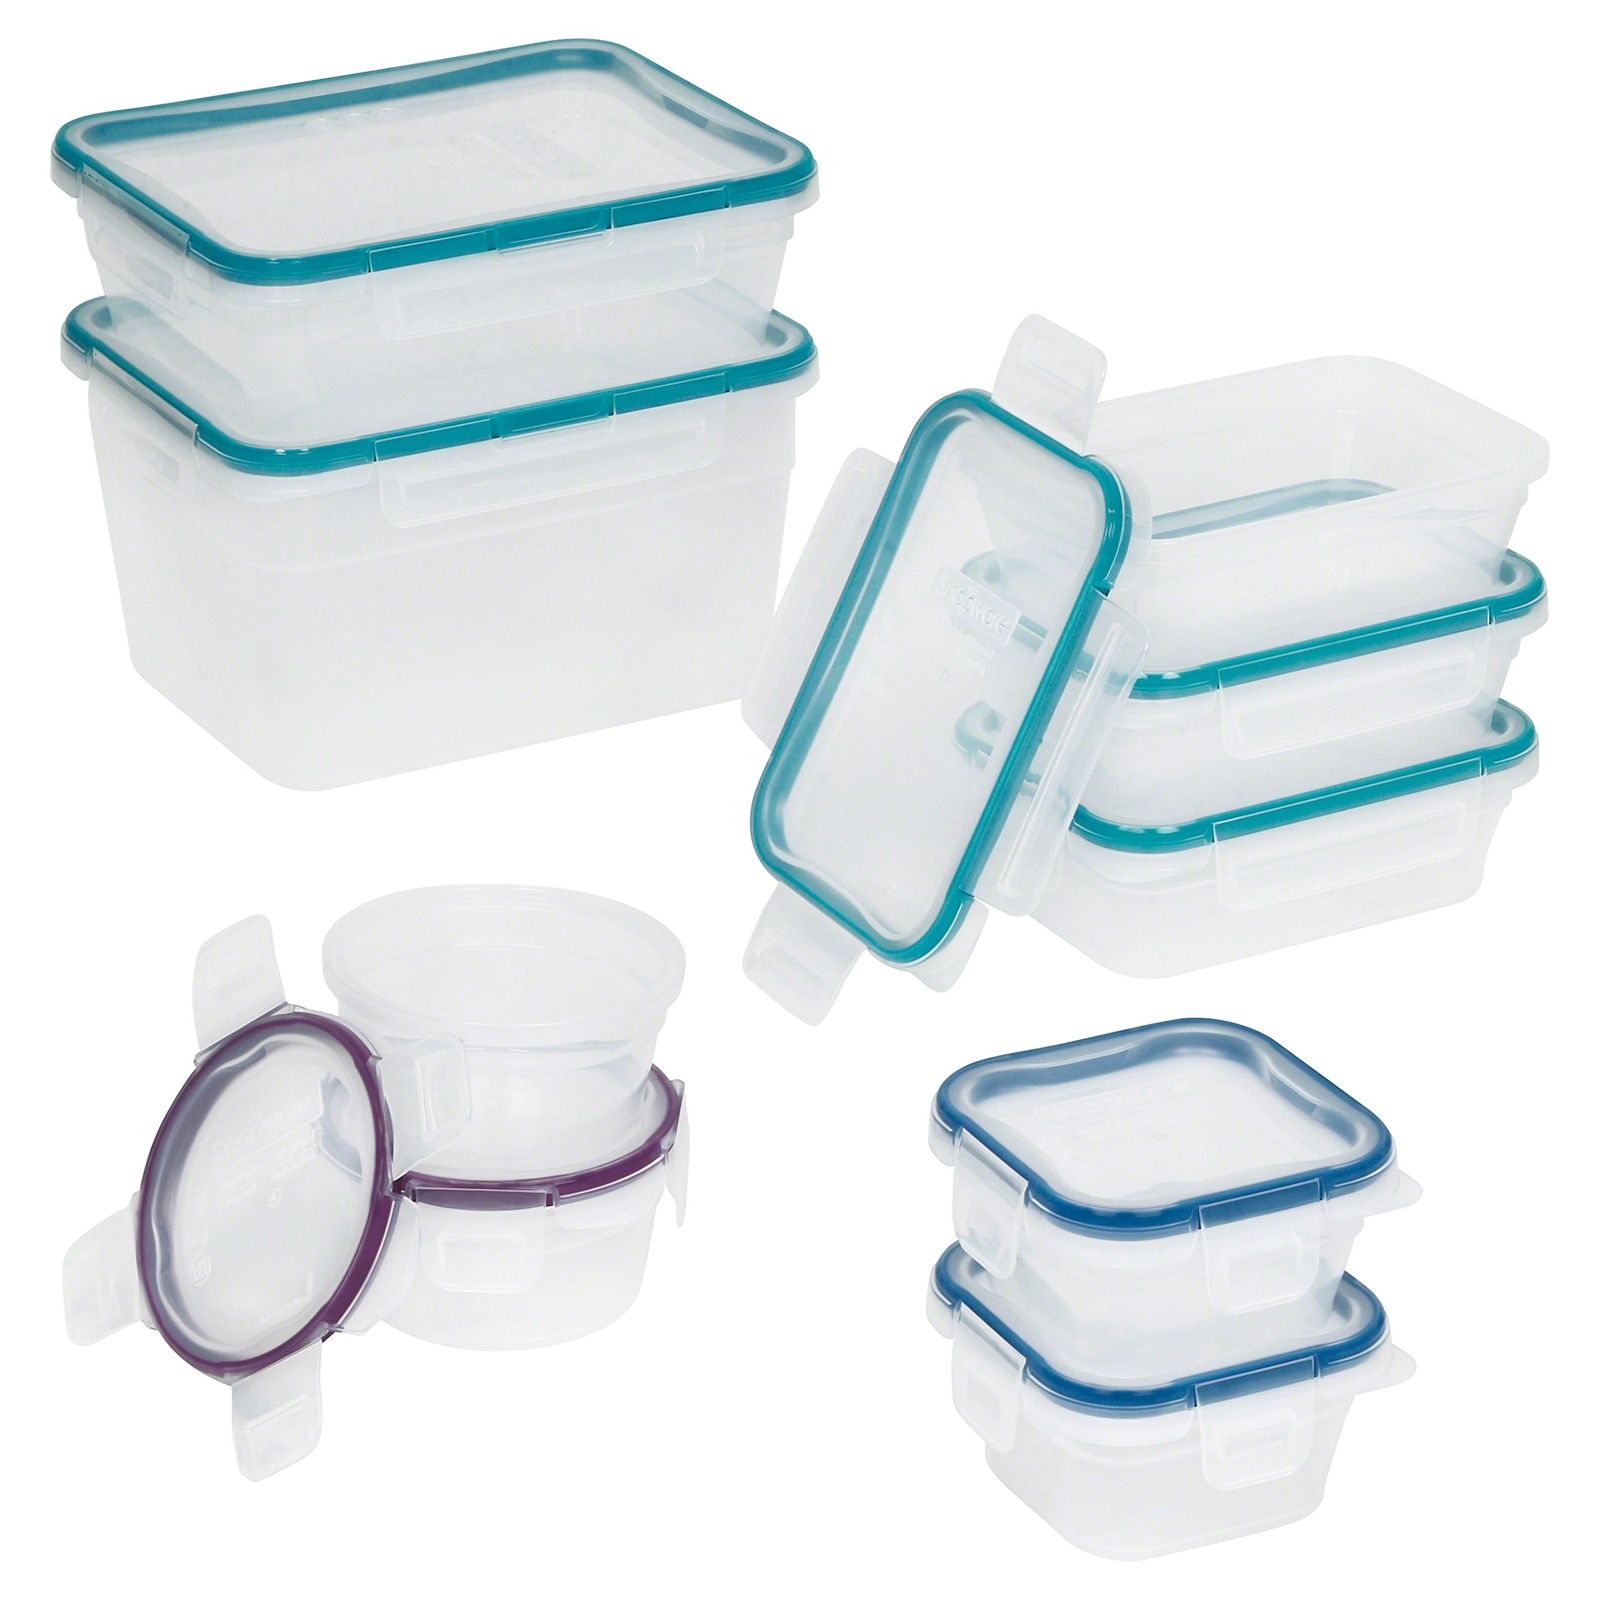 Snapware Total Solution Plastic Food Storage Container Set (18-Piece) 1